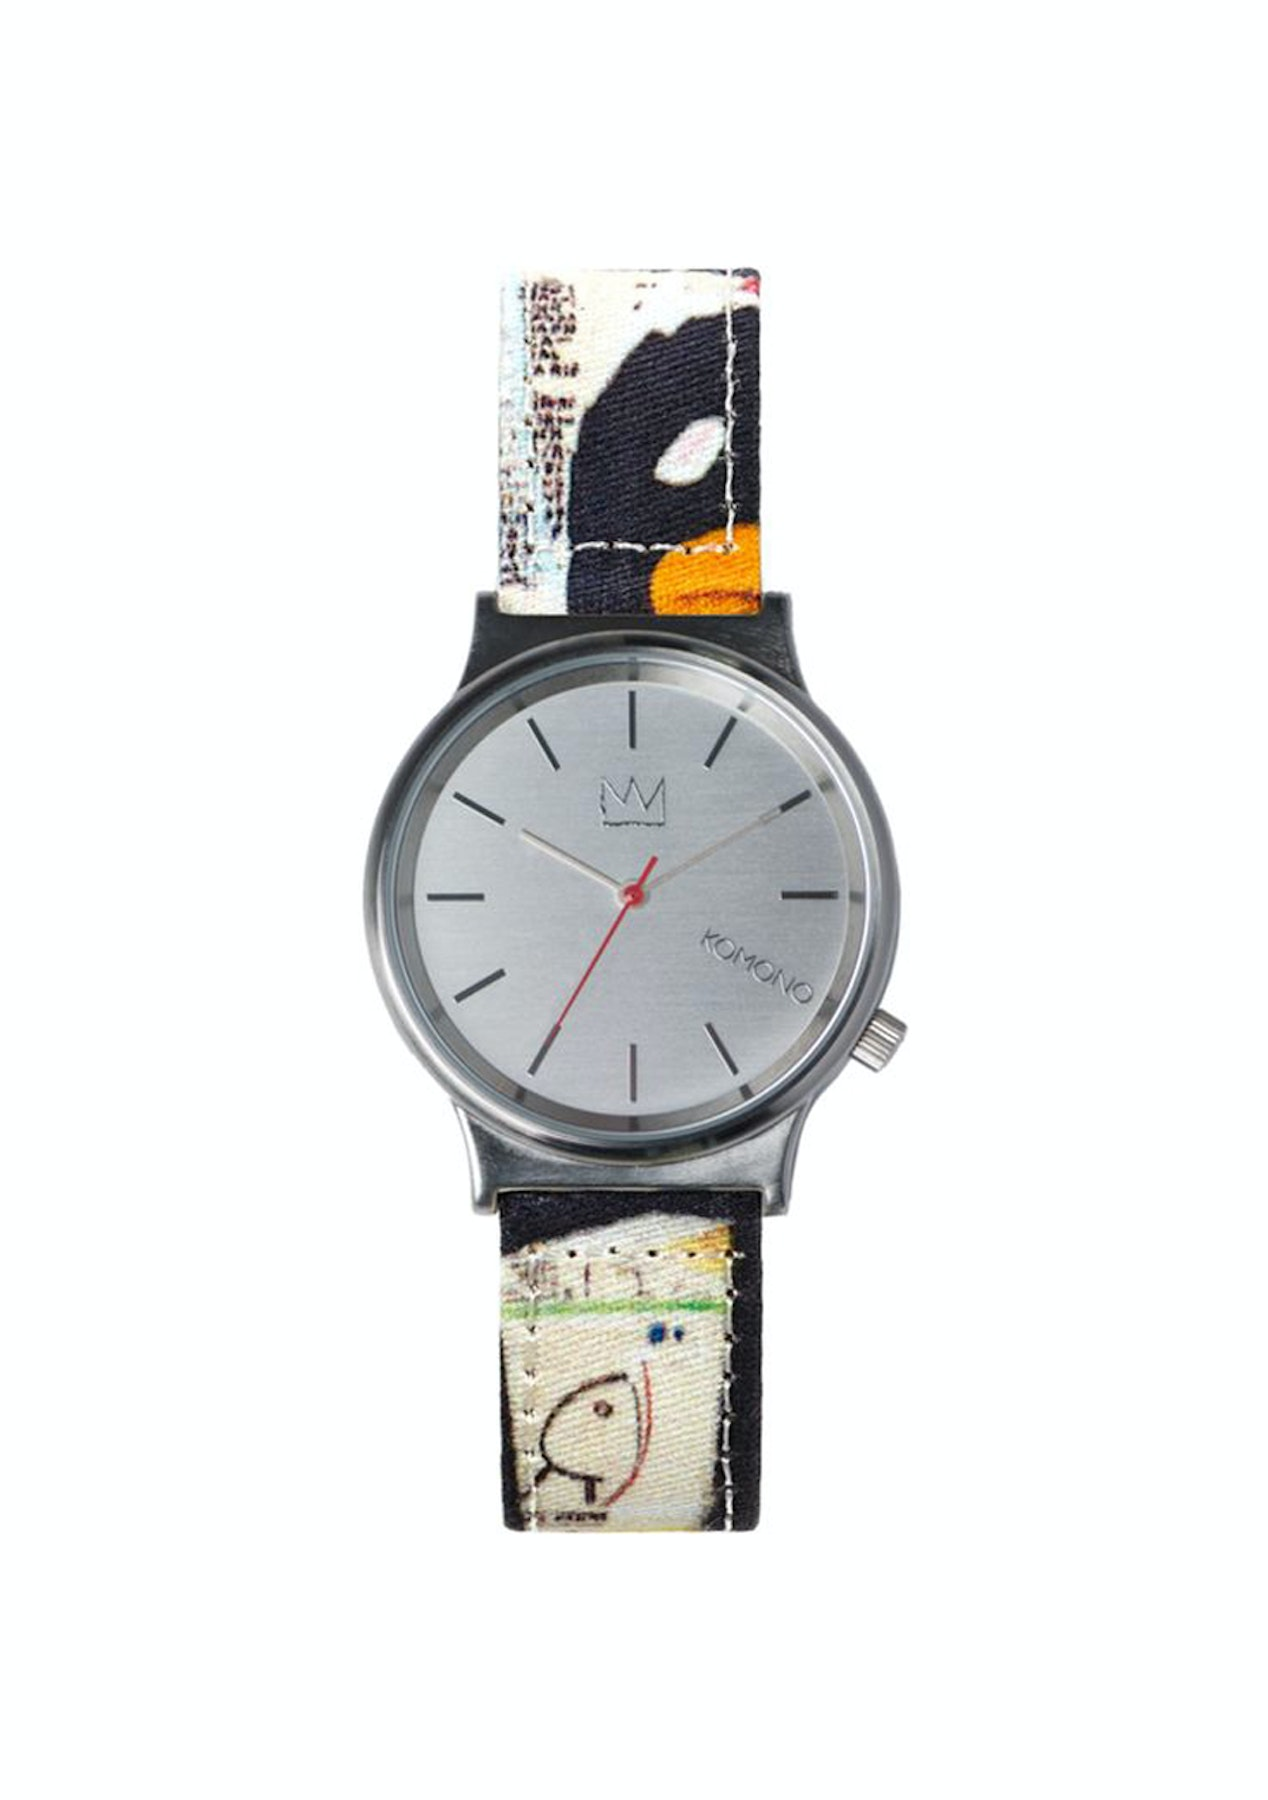 nocrop watches watch jewelry size tweed see ca print grey en chanel p default front full view image boy friend